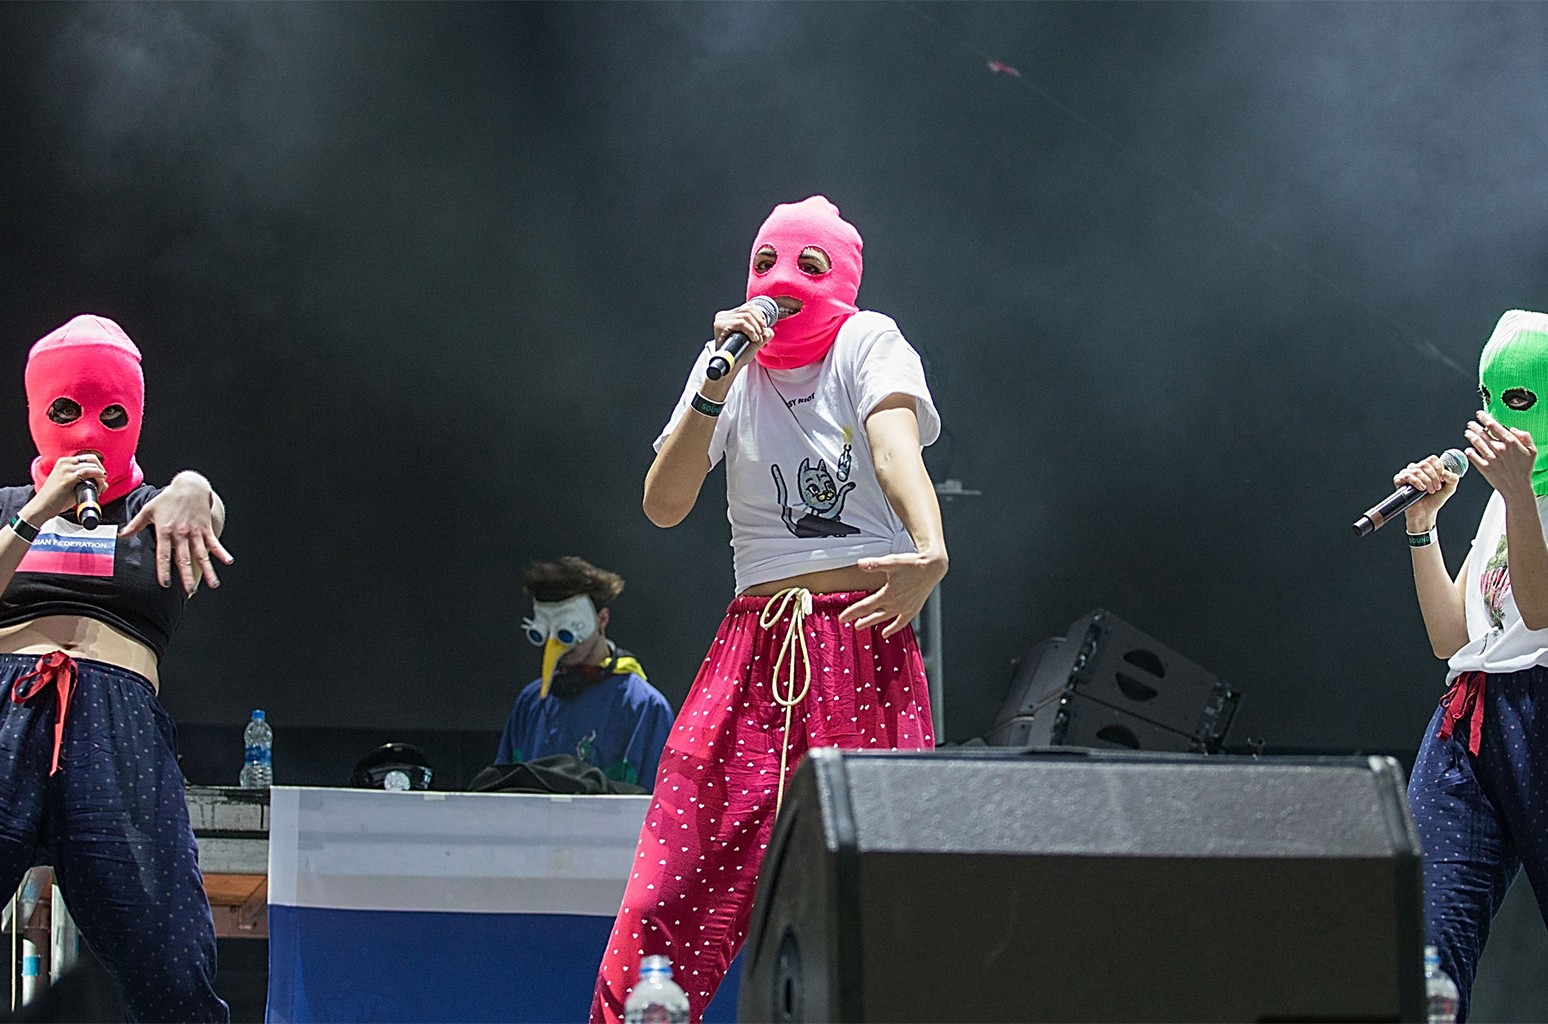 Conceptual artist Nadezhda Tolokonnikova (C) of Pussy Riot performs onstage during Day for Night festival on Dec. 16, 2017 in Houston, Texas.